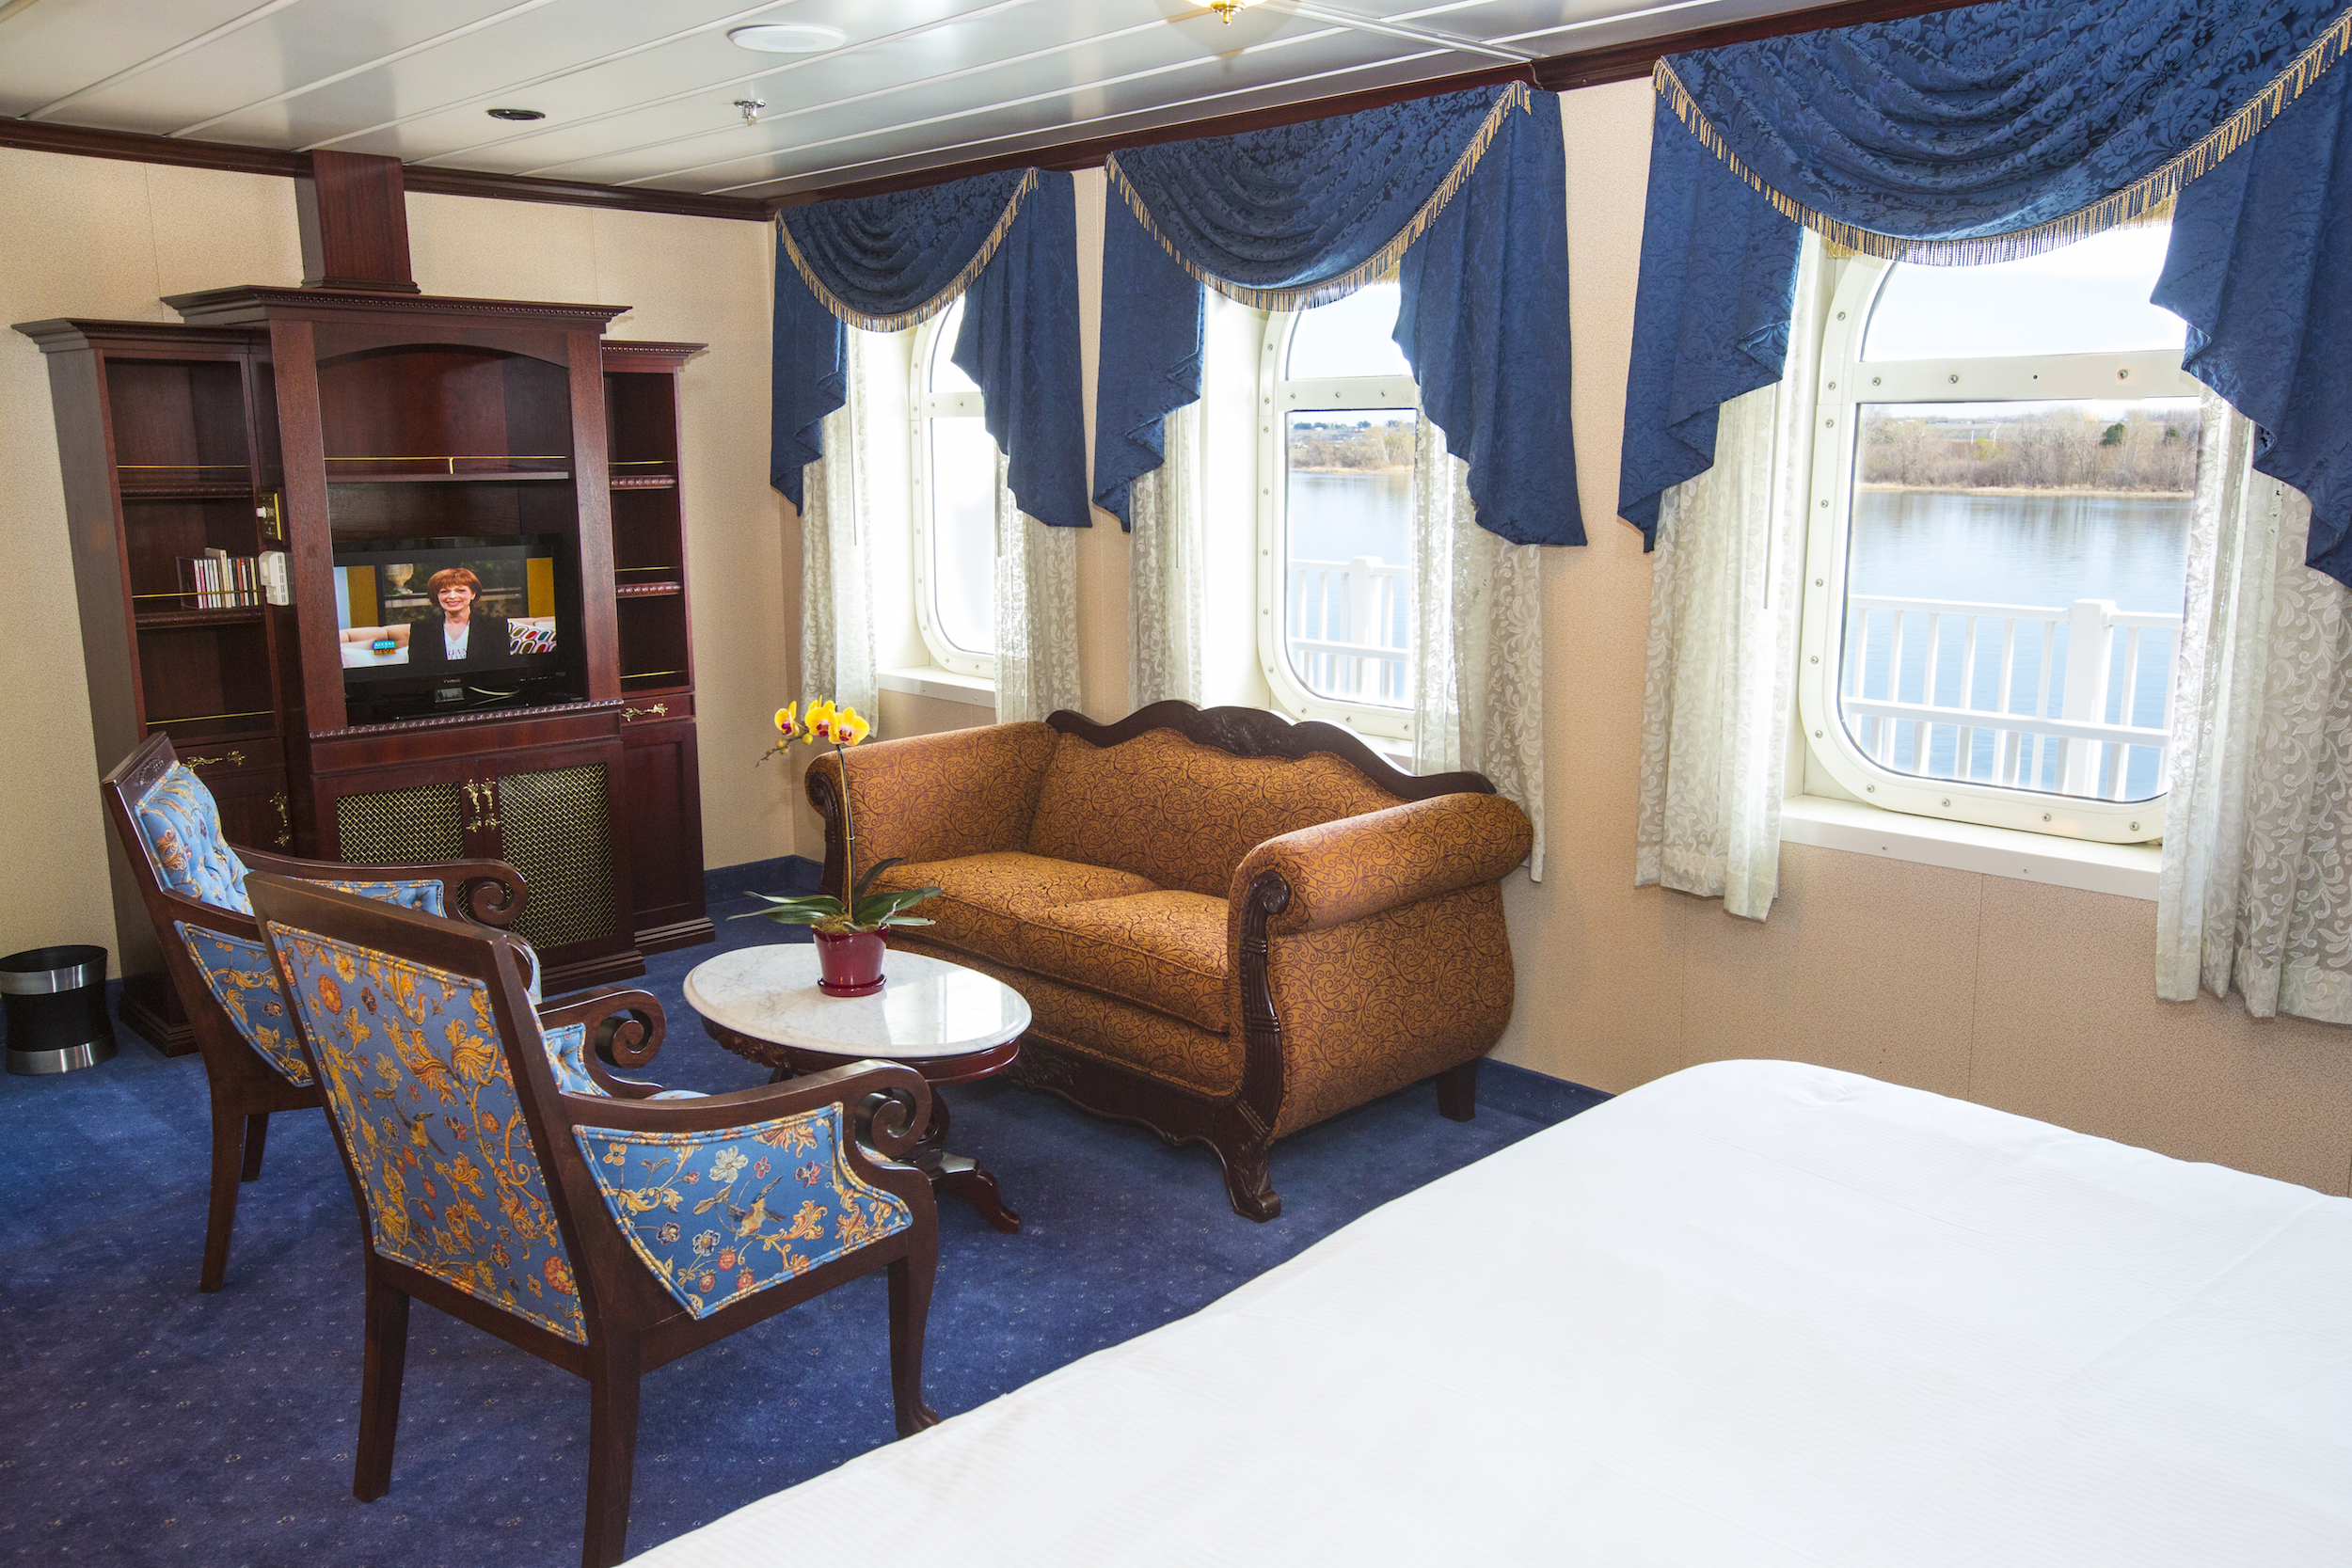 American Queen Steamboat Company American Empress Accommodation Suite with Veranda.jpg